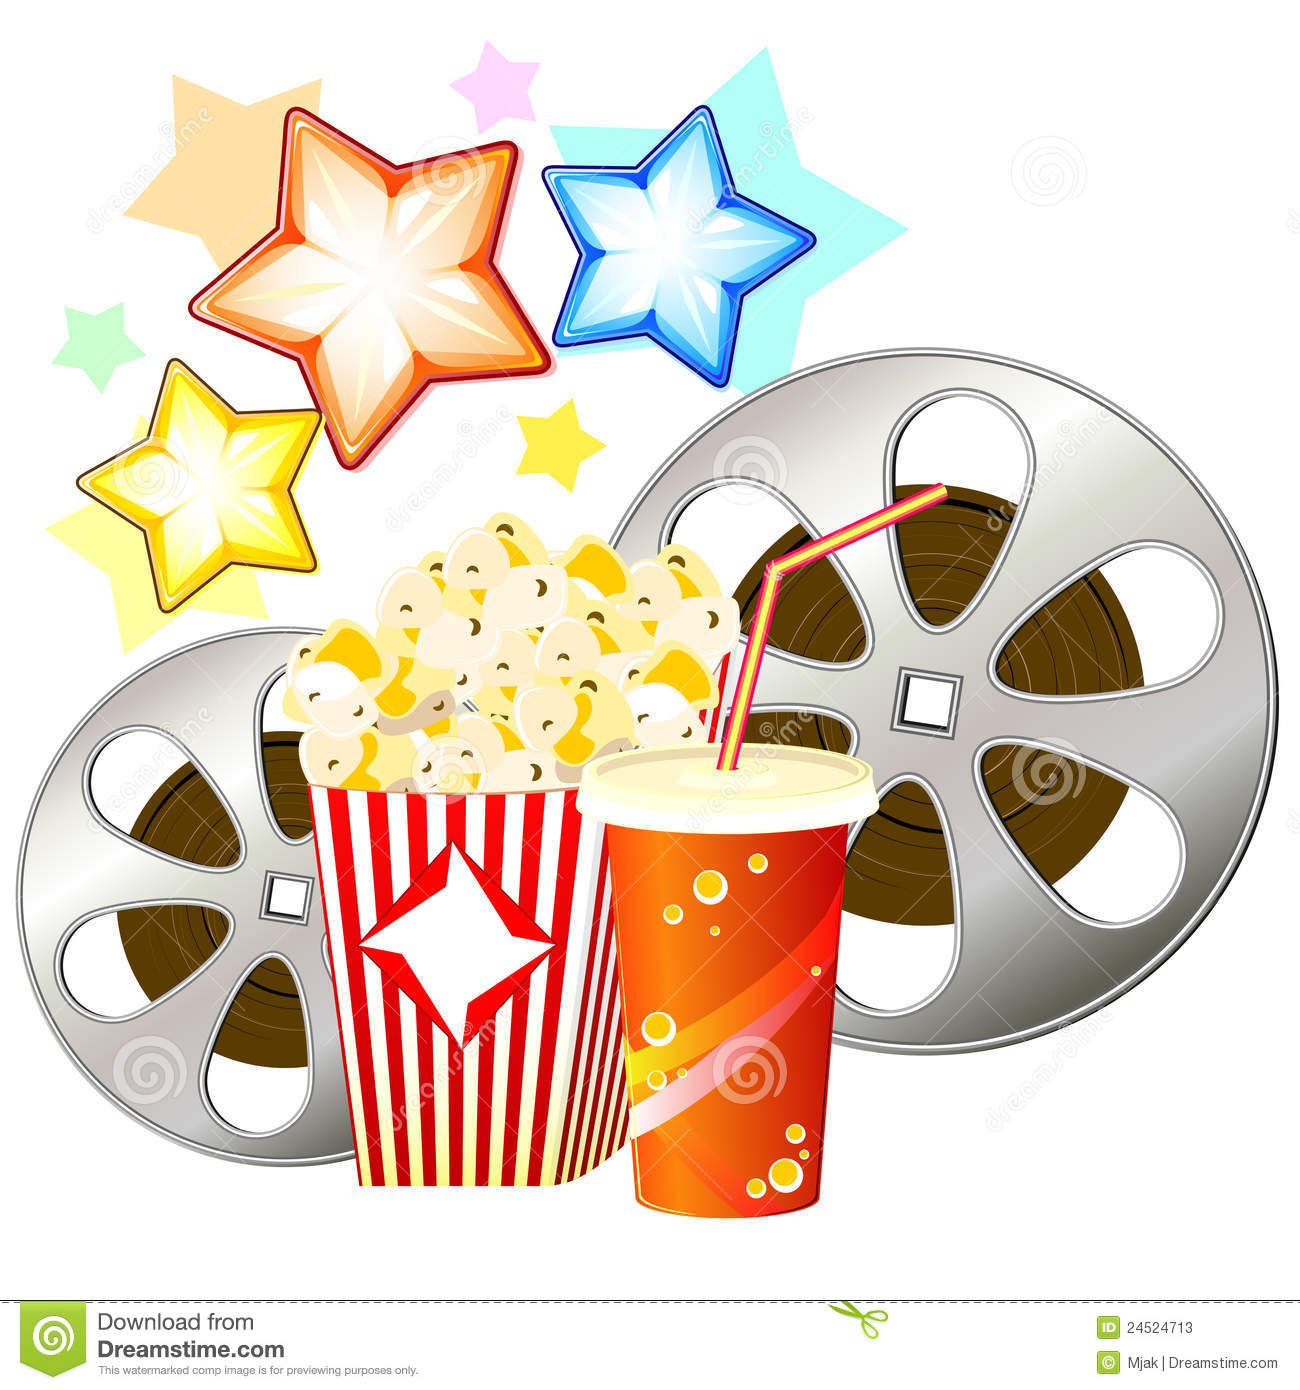 Free Watching Movie Cliparts, Download Free Clip Art, Free ... |Kids Watching Movie Clipart